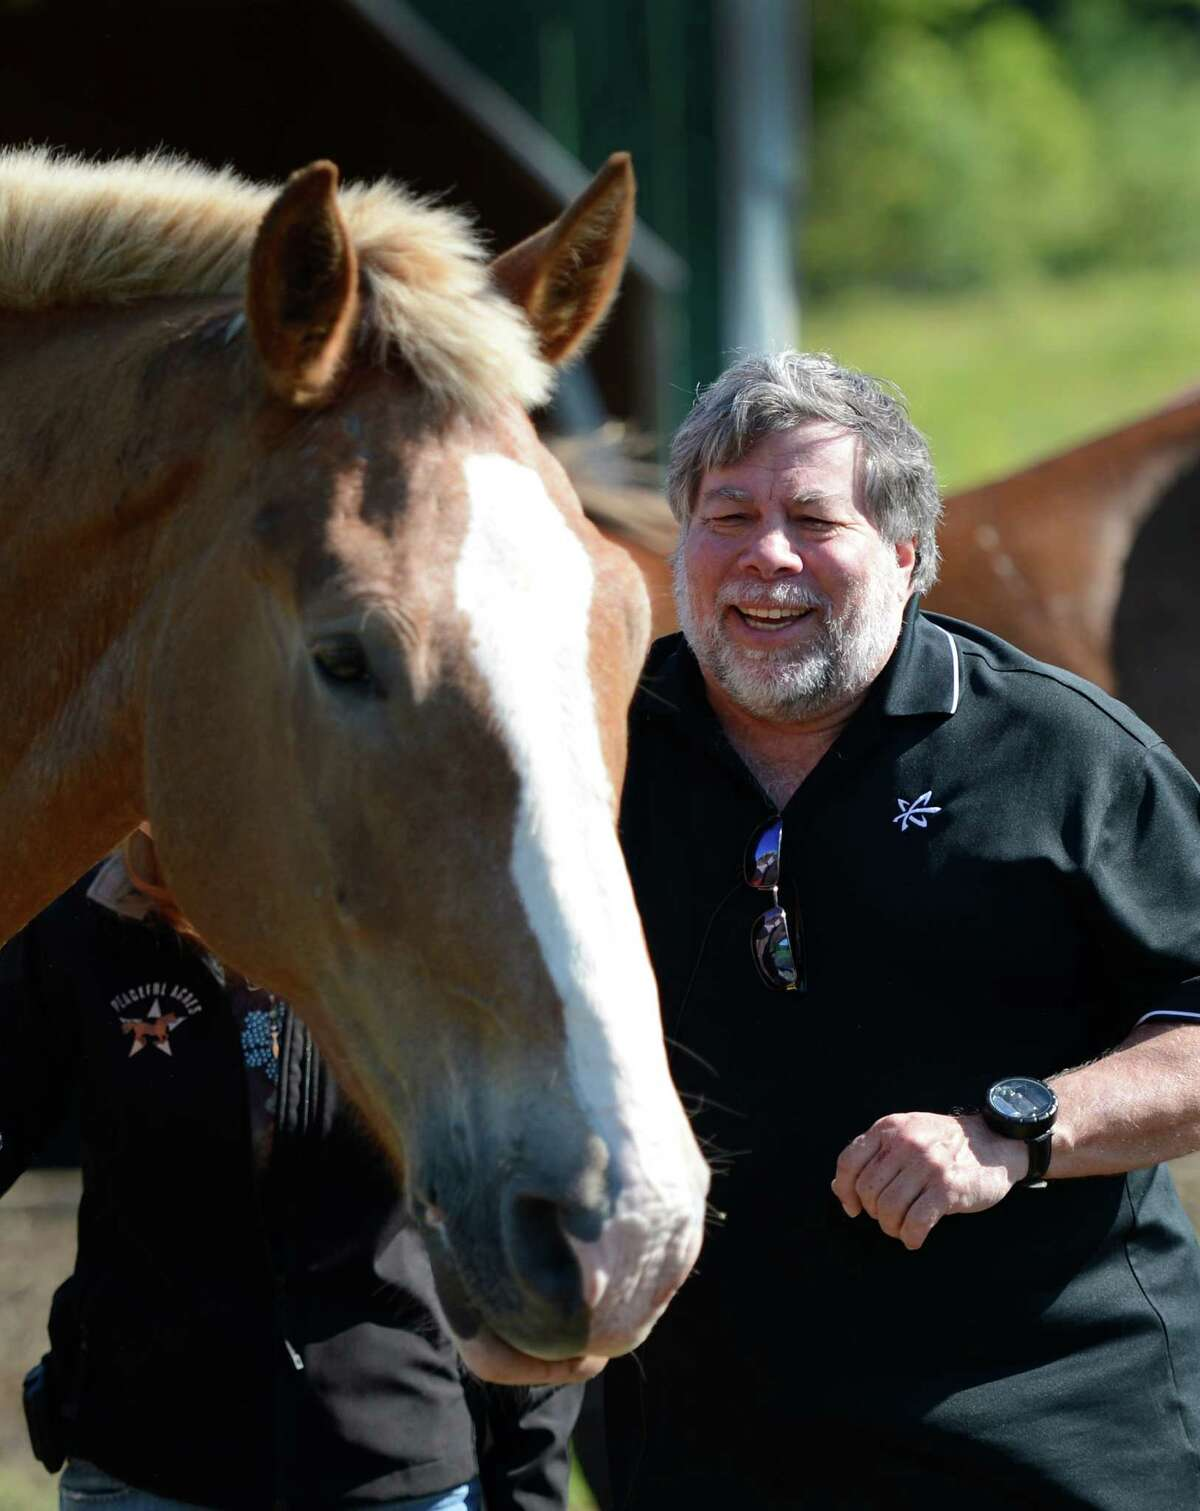 """Steve Wozniak, co-founder of Apple Computer meets """"Woz"""" a horse named for him that was rescued from a kill pen and now resides on the Peaceful Acres Horse Farm in Patersonville, N.Y. June, 13, 2012. Peaceful Acres Horse Farm is a farm that rescues horses of all breeds and rehabilitates them with the aid of donations and volunteers. They also incorporate human rehabilitation with animals as part of their mission. (Skip Dickstein / Times Union)"""